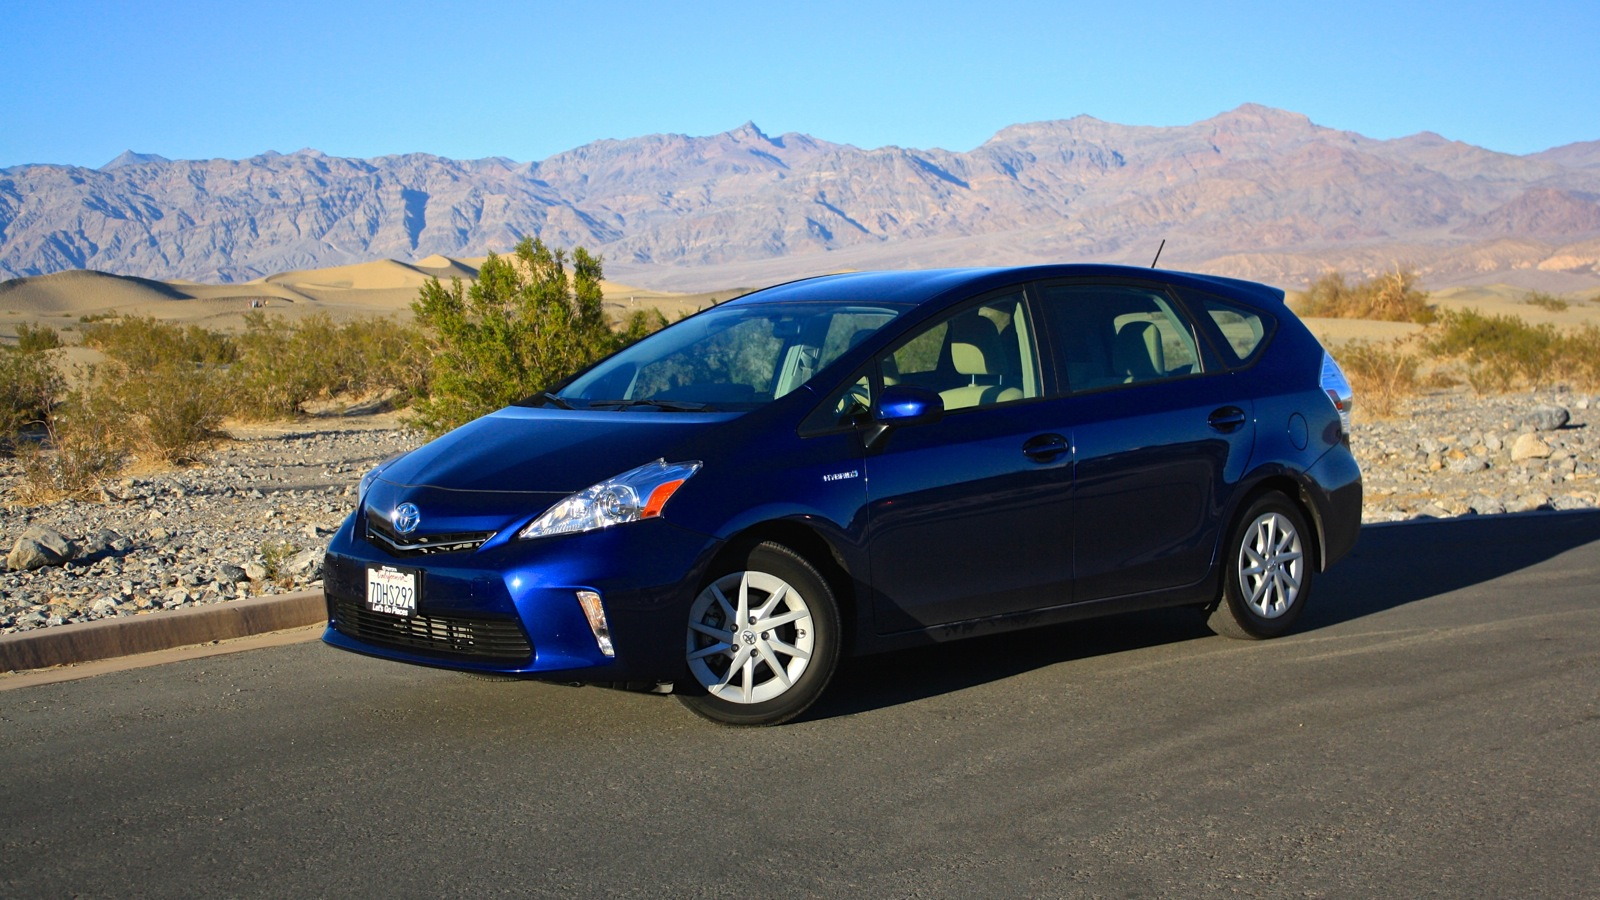 2014 toyota prius v wagon review pricing pictures holidays oo. Black Bedroom Furniture Sets. Home Design Ideas